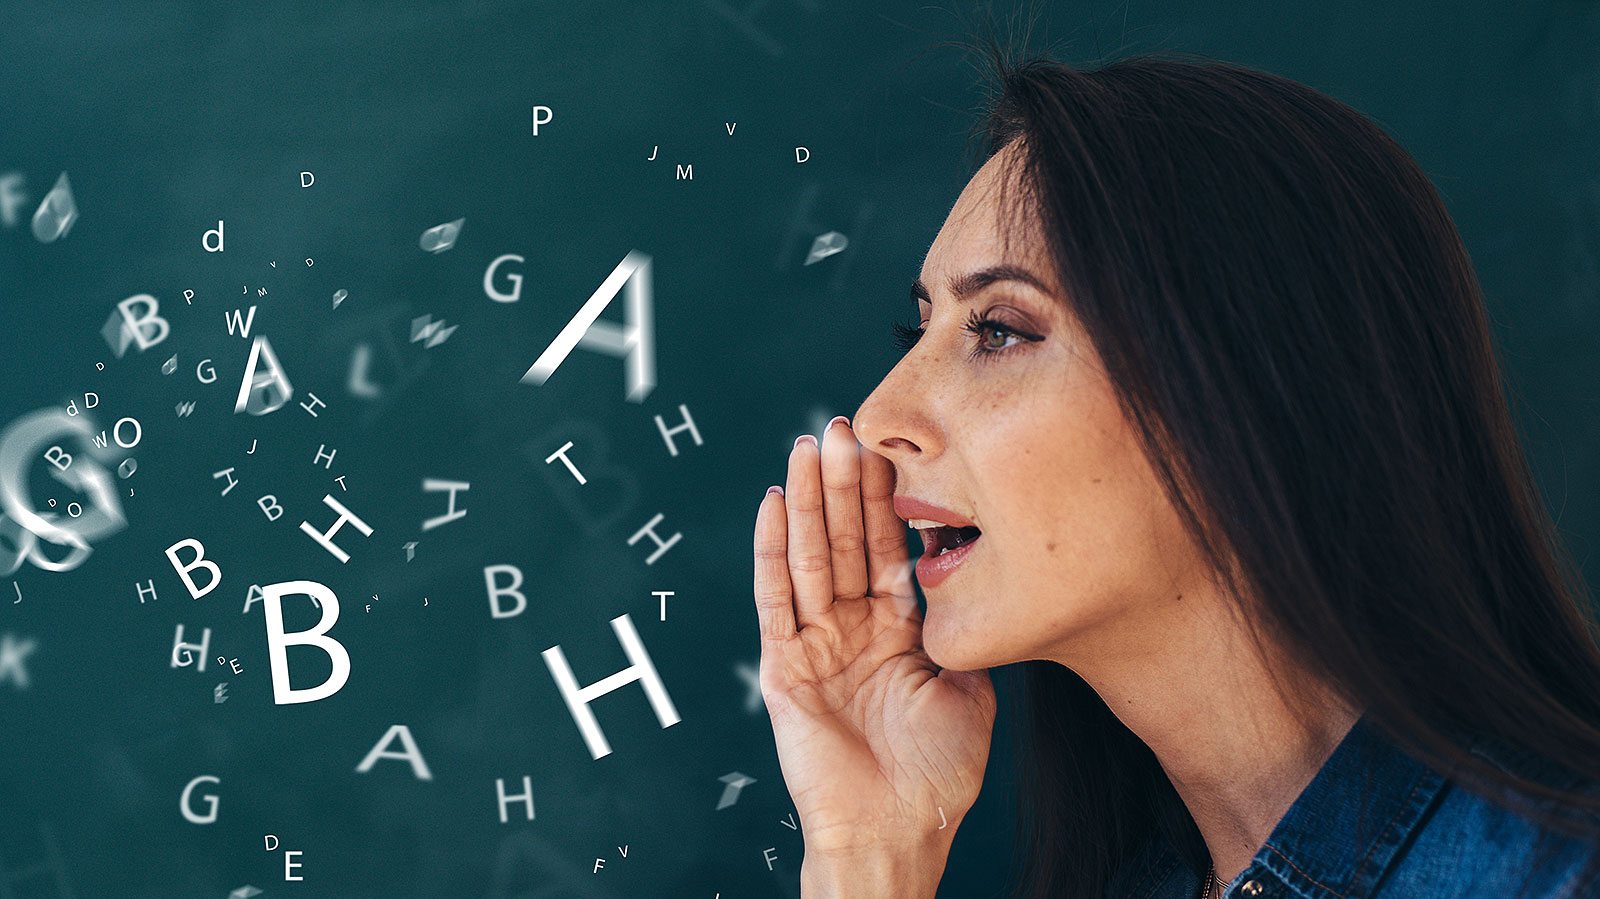 If you use this many words when speaking, it can reveal this about your personality